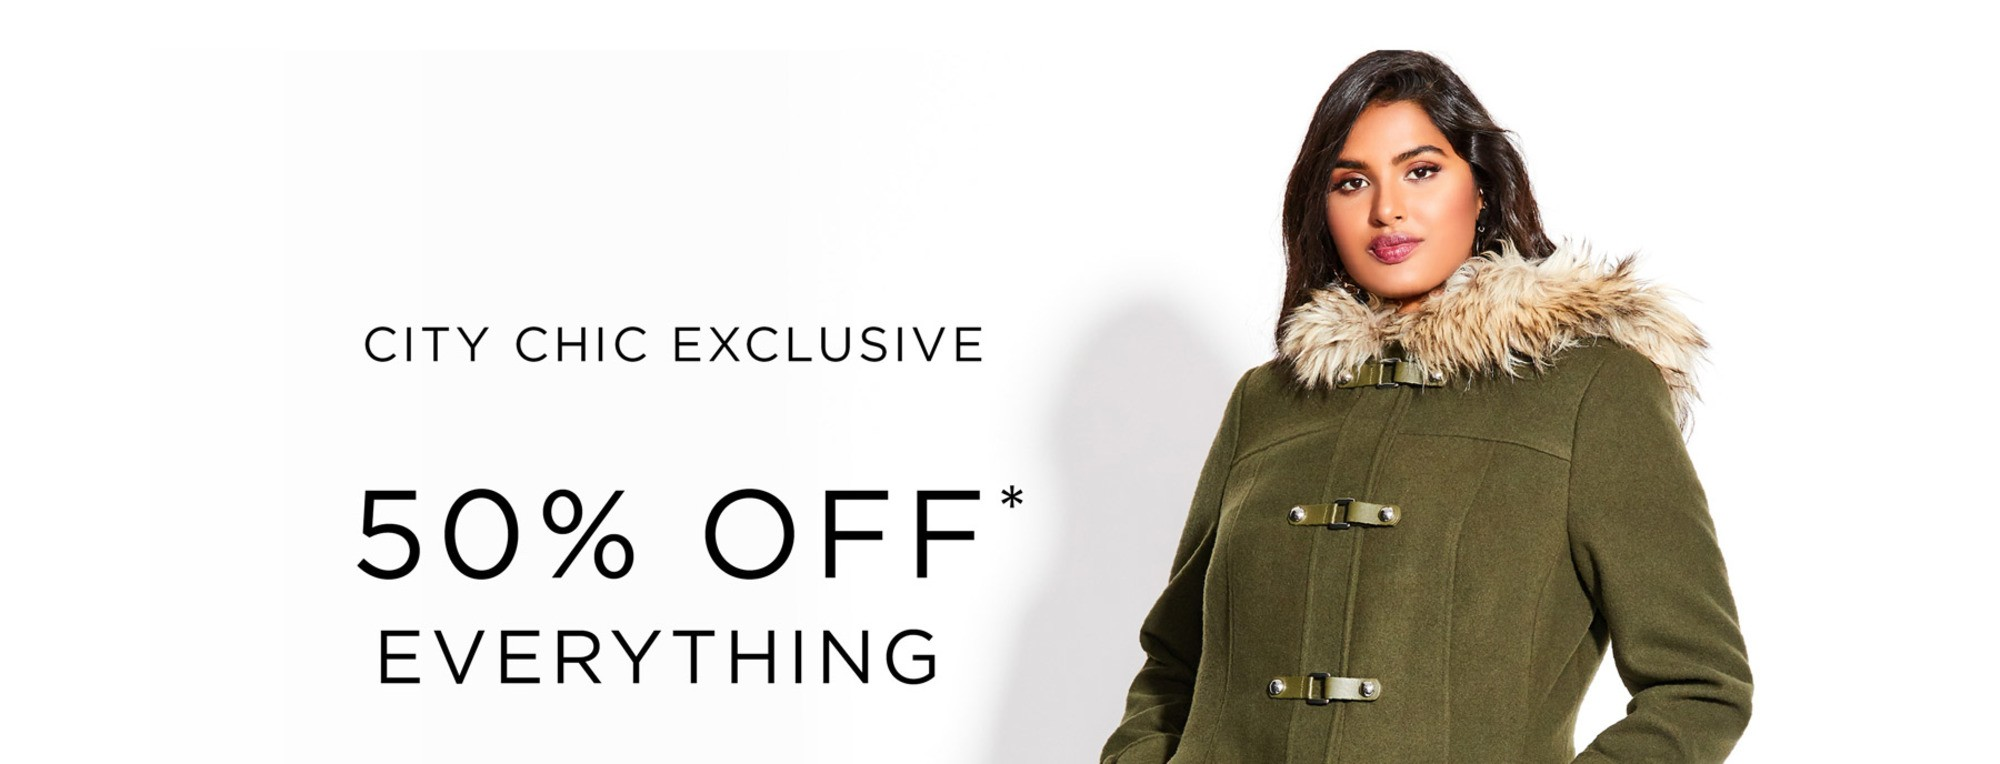 CITY CHIC EXCLUSIVE - 50% OFF EVERYTHING* - Condition Apply, See Terms for Details - SHOP NOW